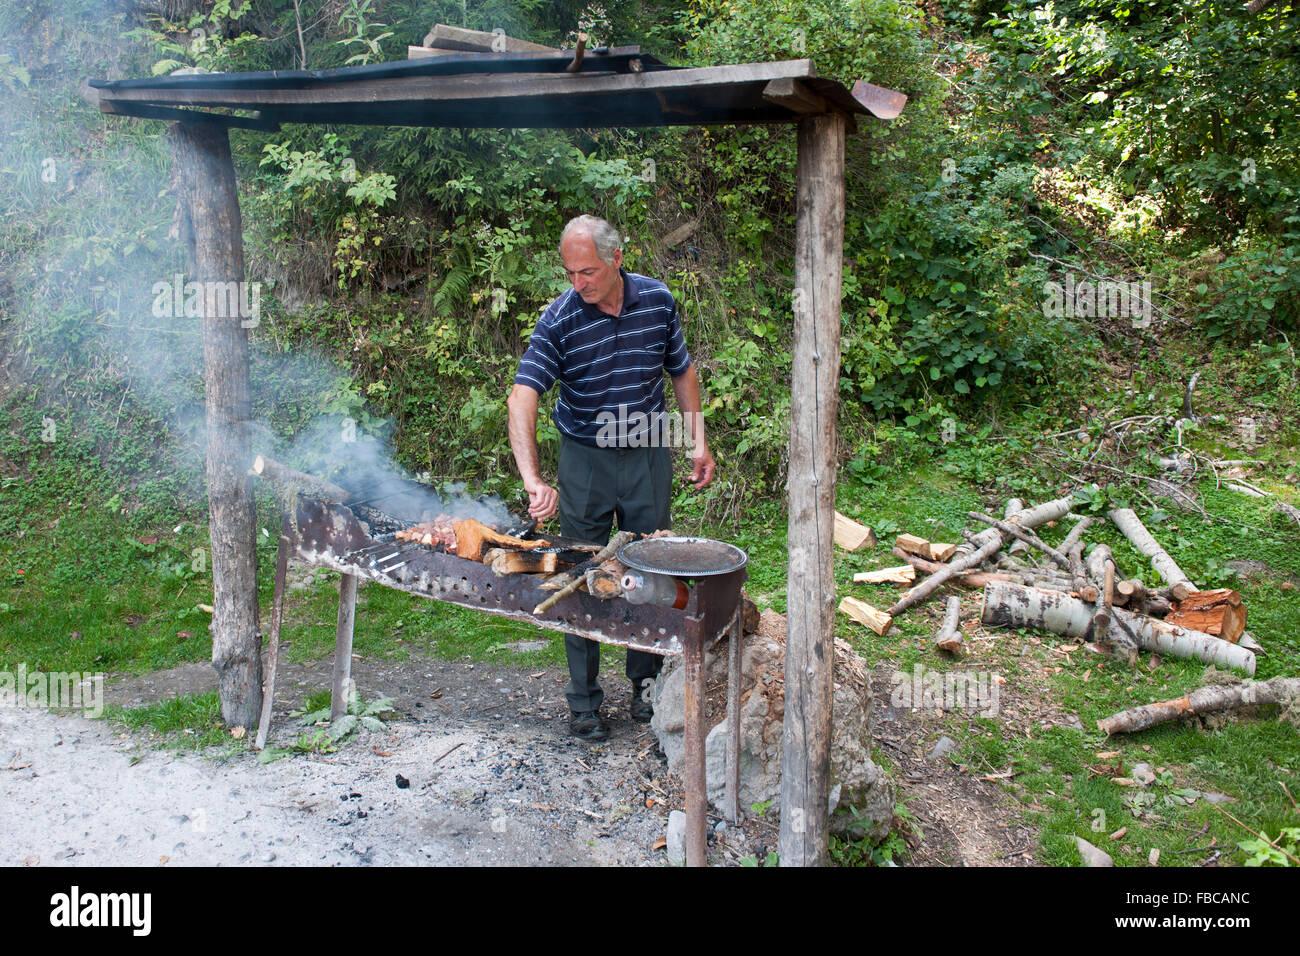 kleiner grill stock photos & kleiner grill stock images - alamy